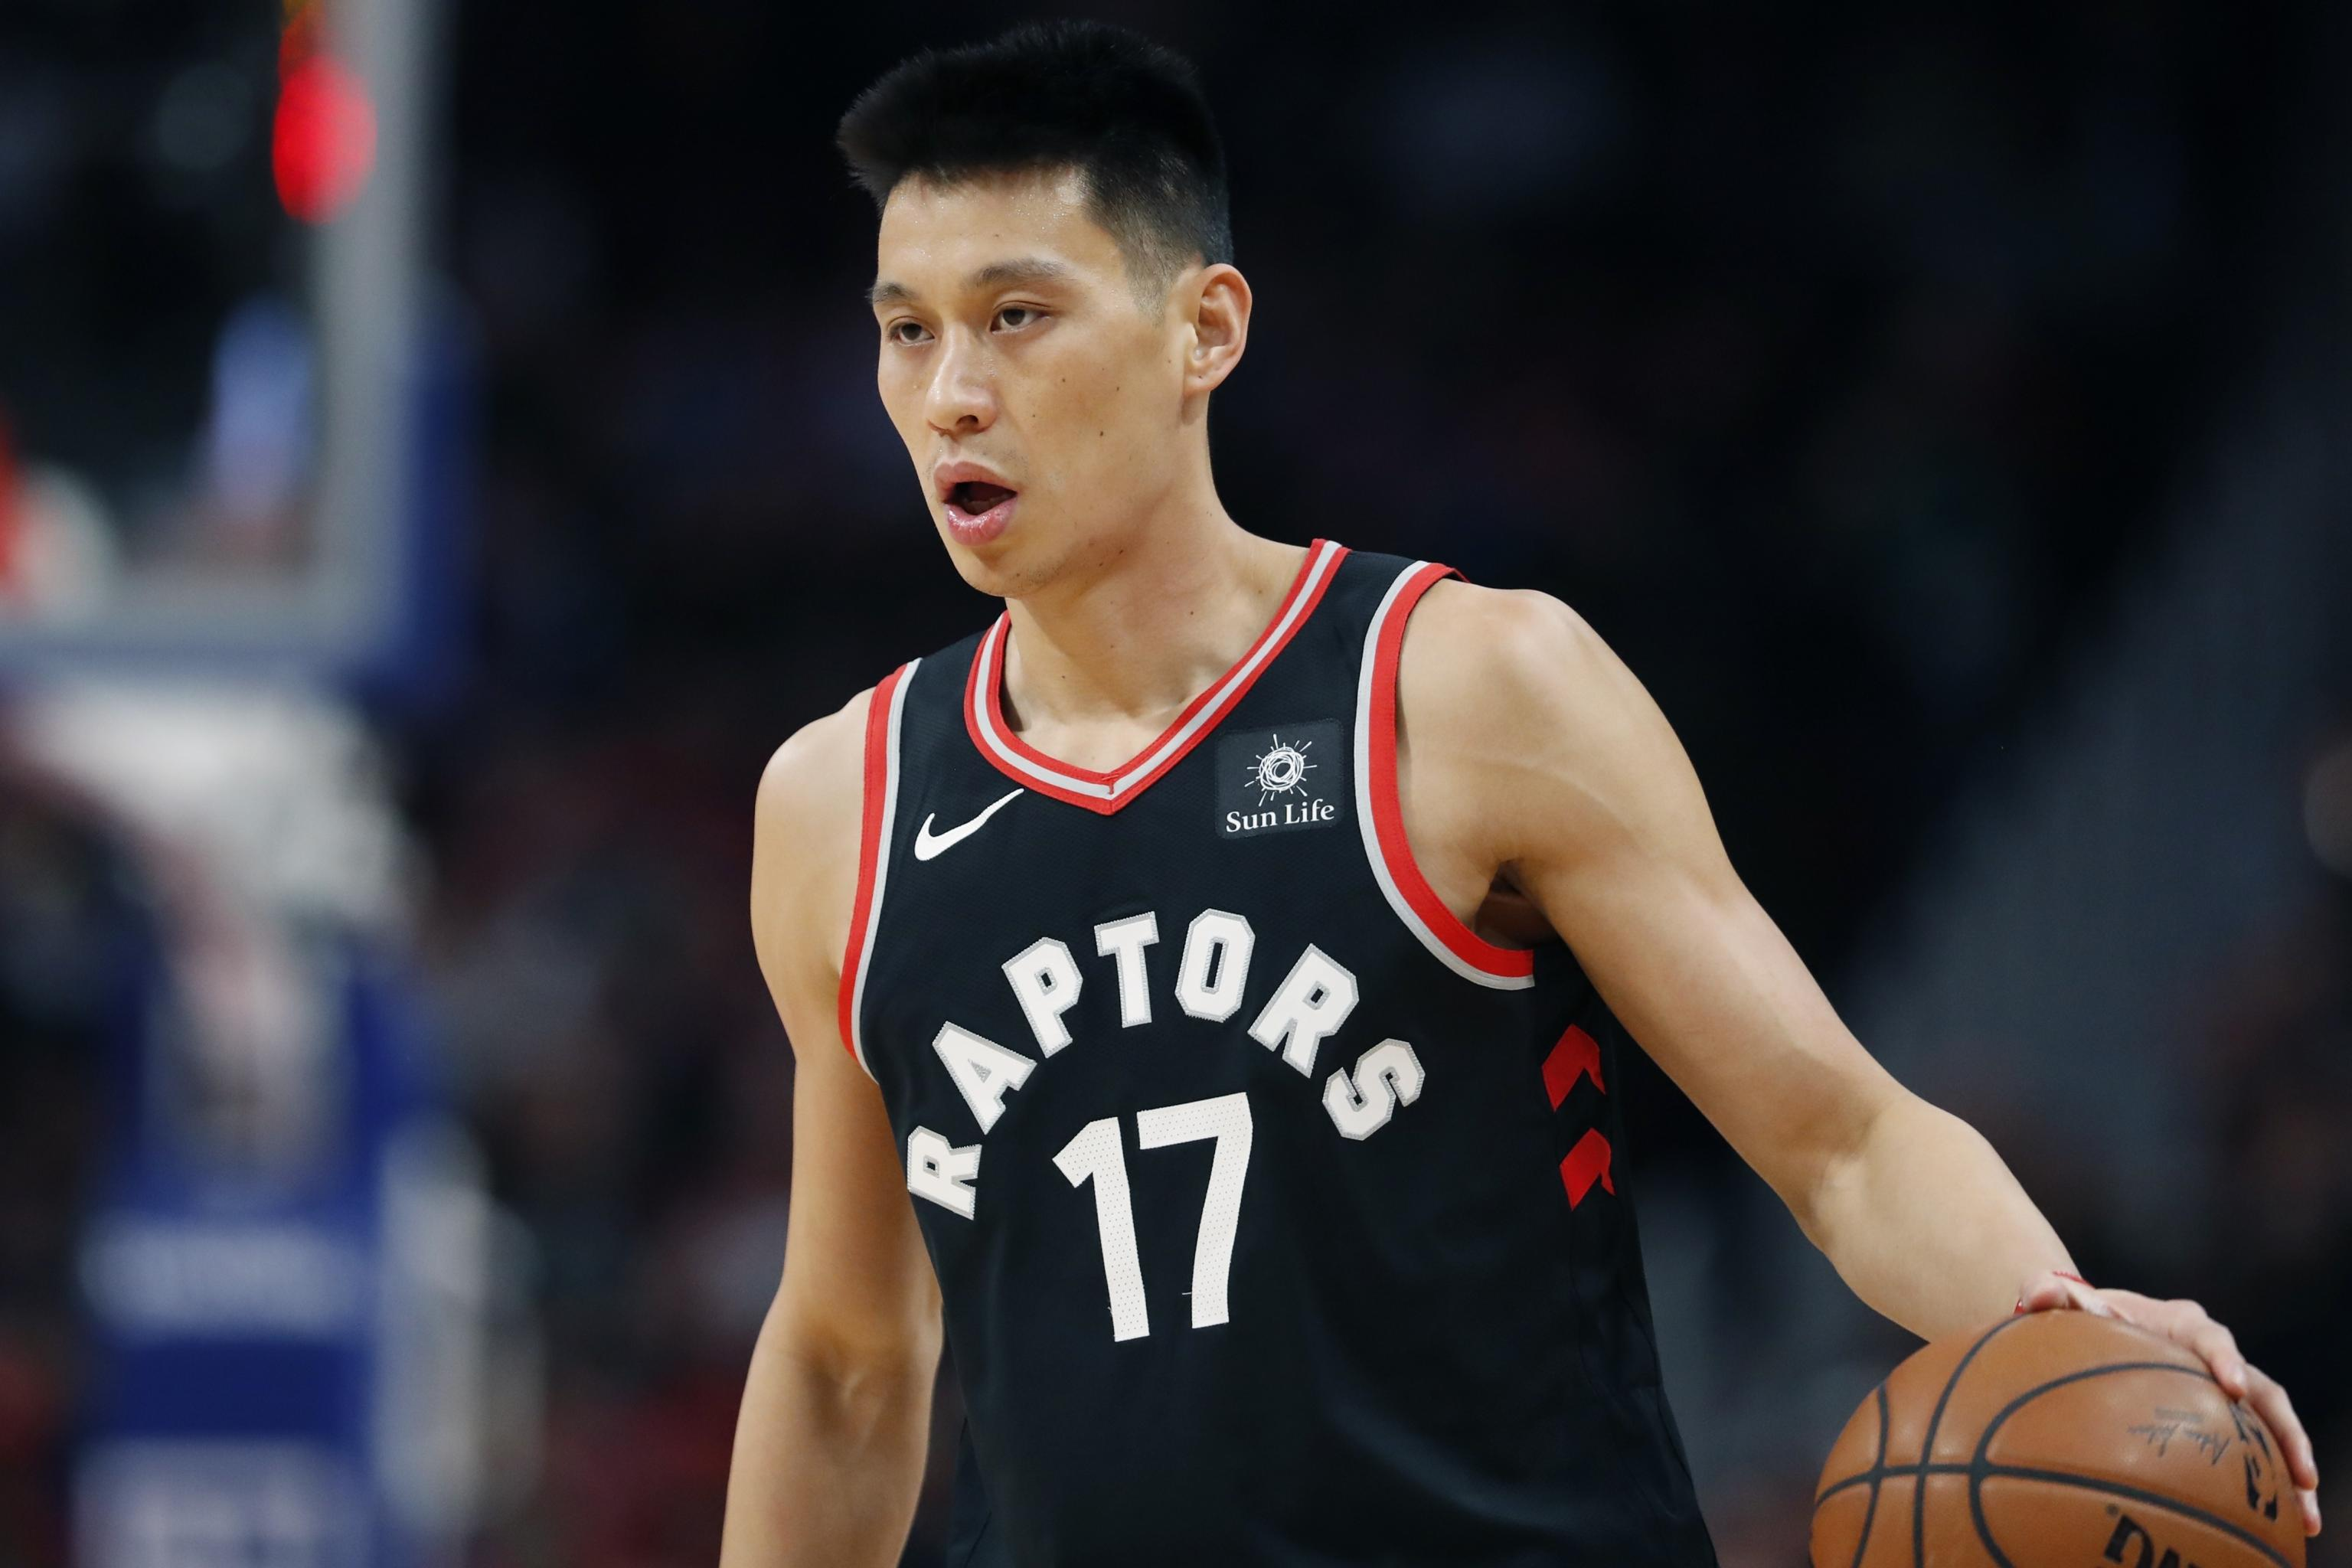 Raptors' Jeremy Lin Becomes 1st Asian American Player to Win NBA Title